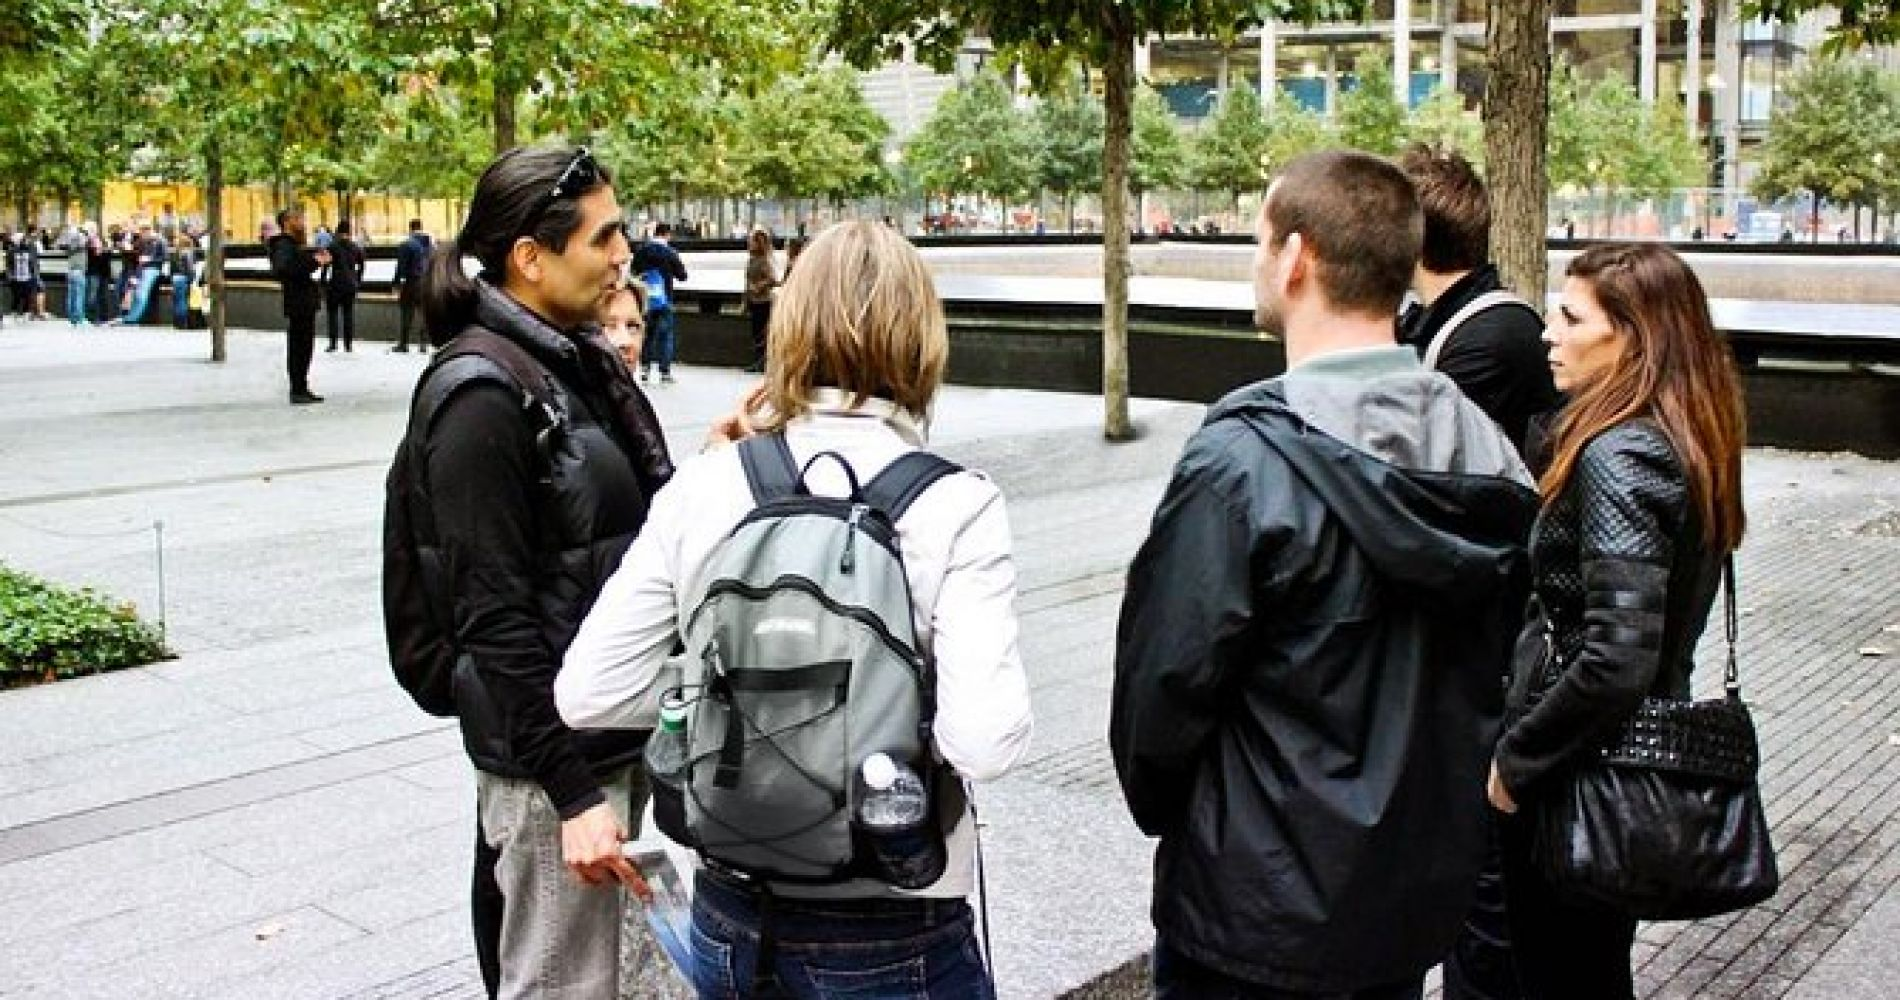 NYC 9/11 Memorial and Ground Zero Tour with Museum Option